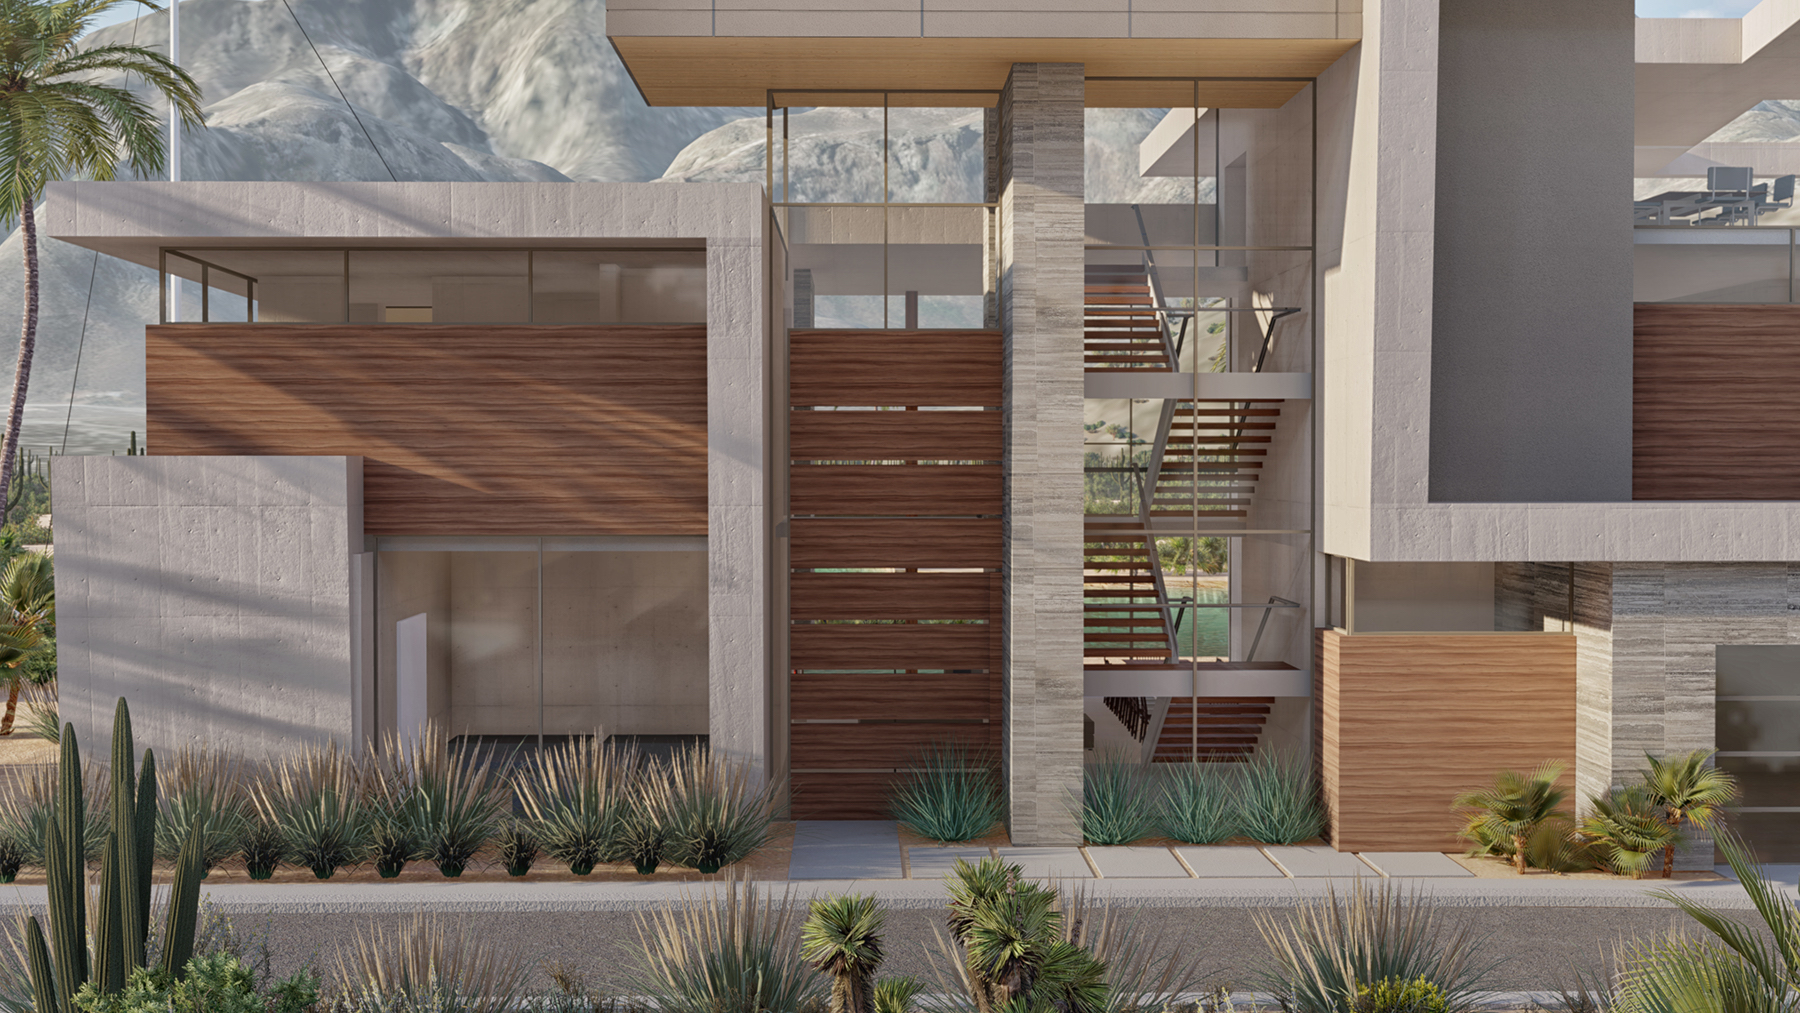 Casa Palomilla View 2 Designed by Drewett Works